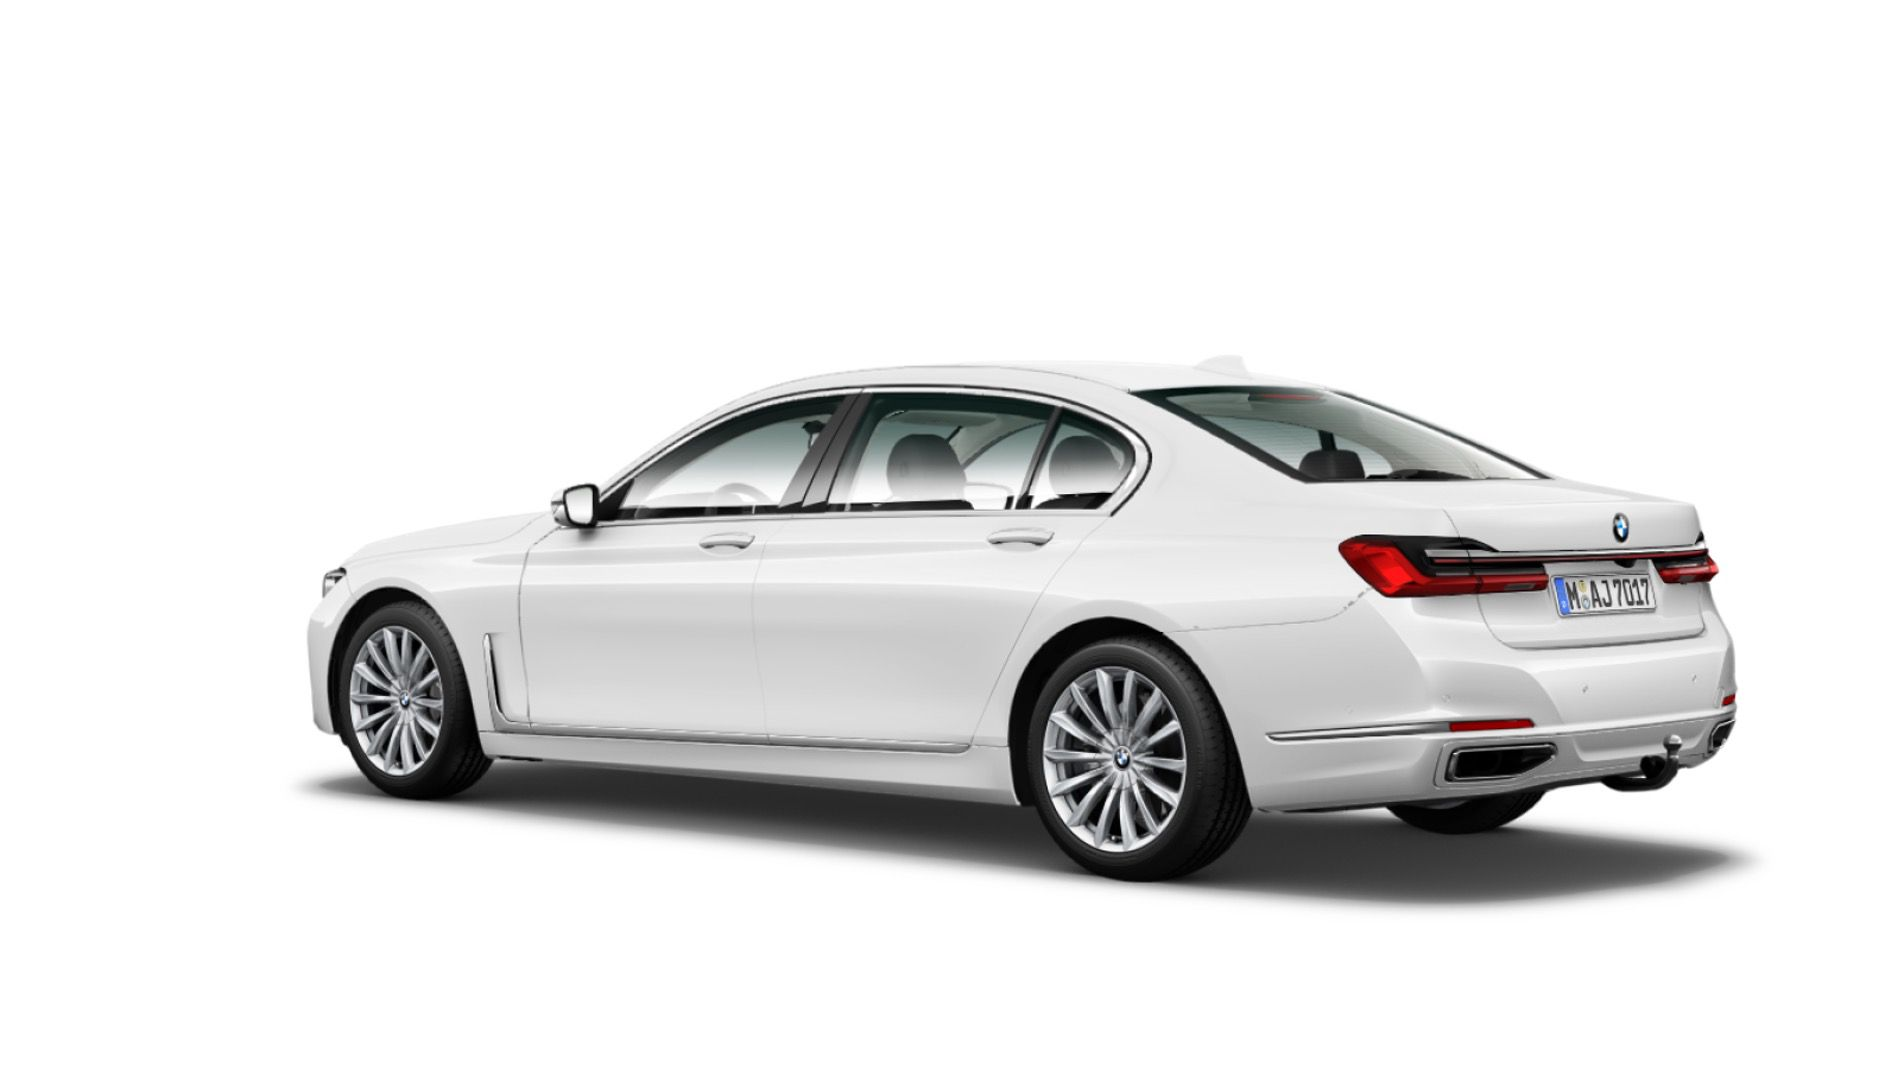 The Bmw 7 Series Facelift Front Rear Side Views